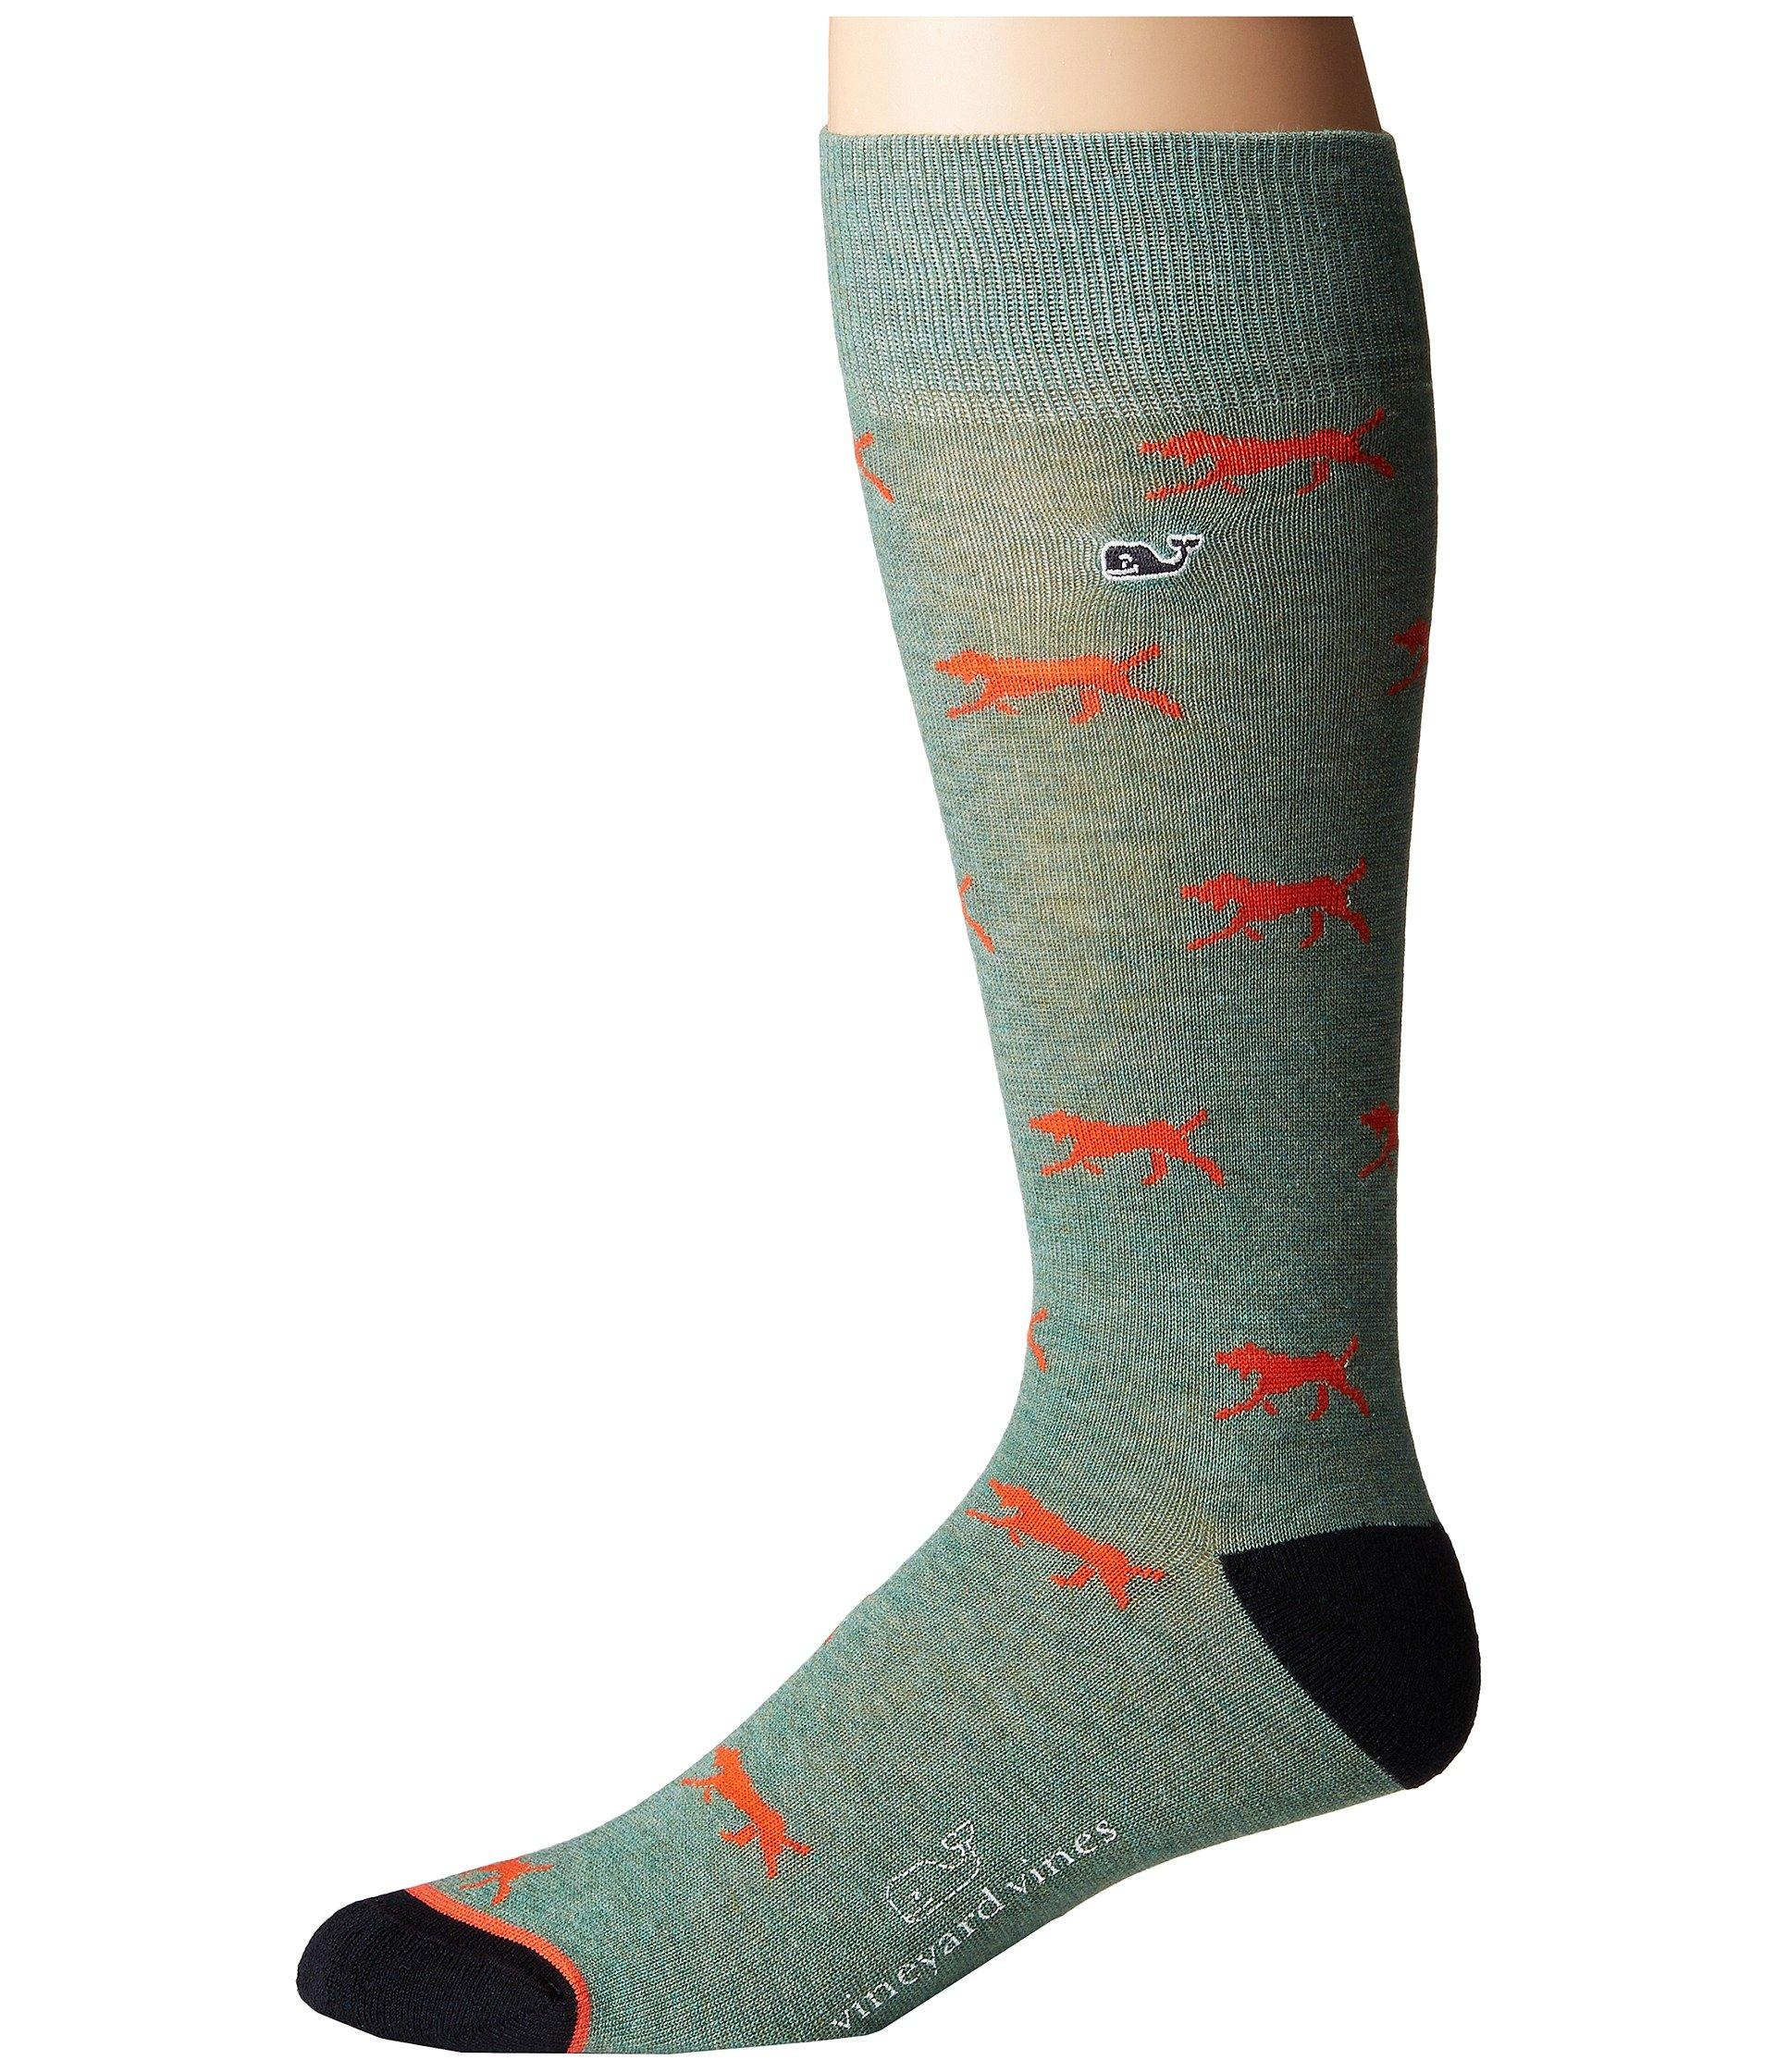 Vineyard Vines Hunting Dog Sock In Starboard Green